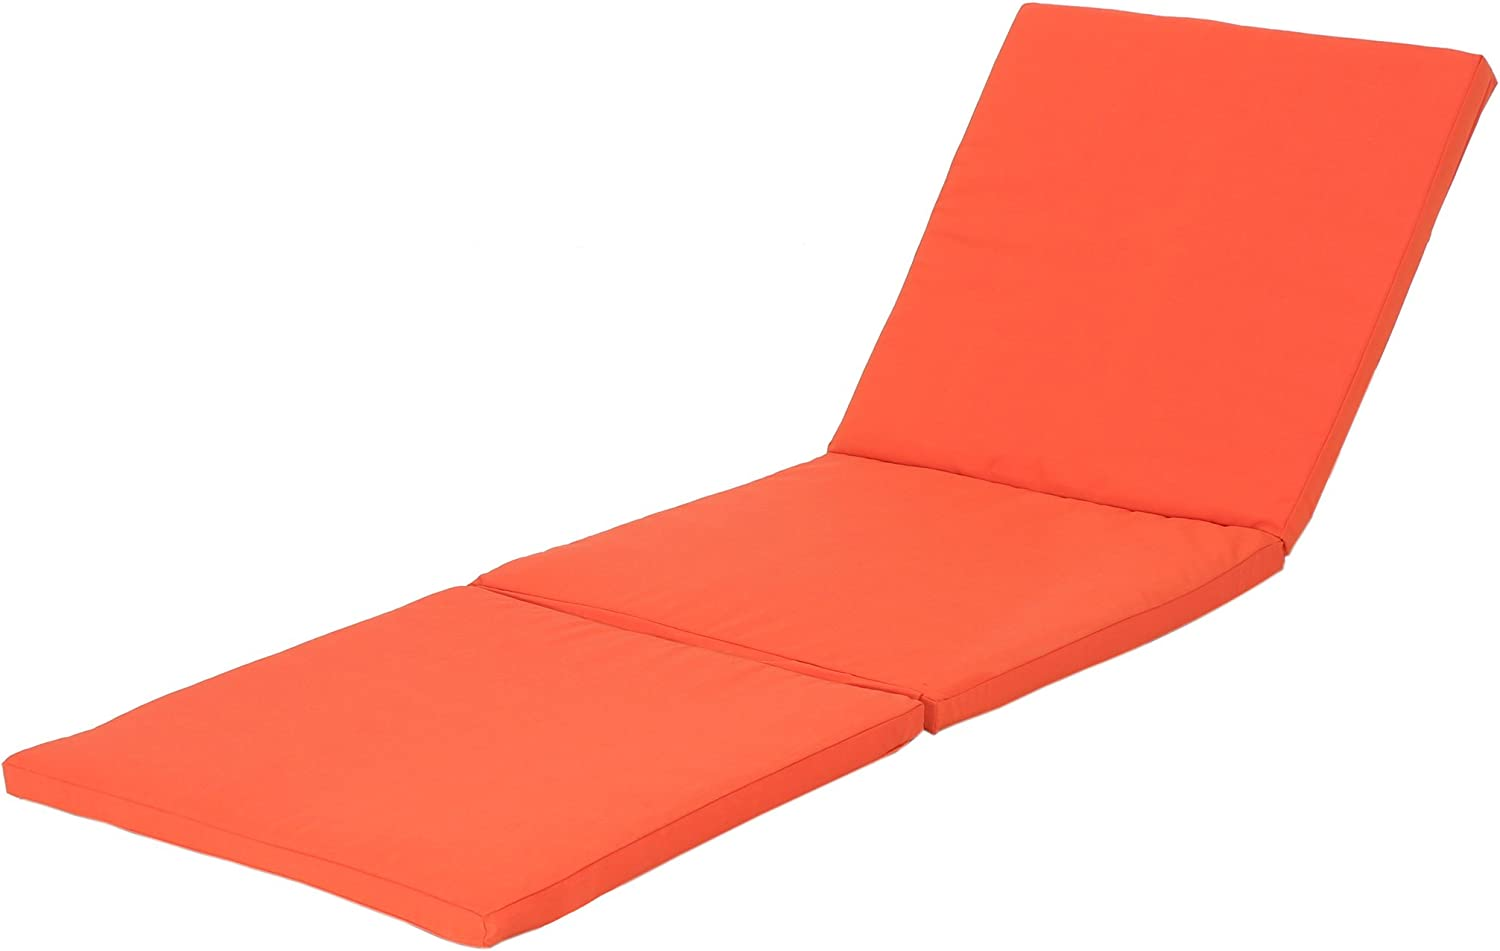 Christopher Knight Home Jamaica Outdoor Water Resistant Chaise Lounge Cushion, Orange